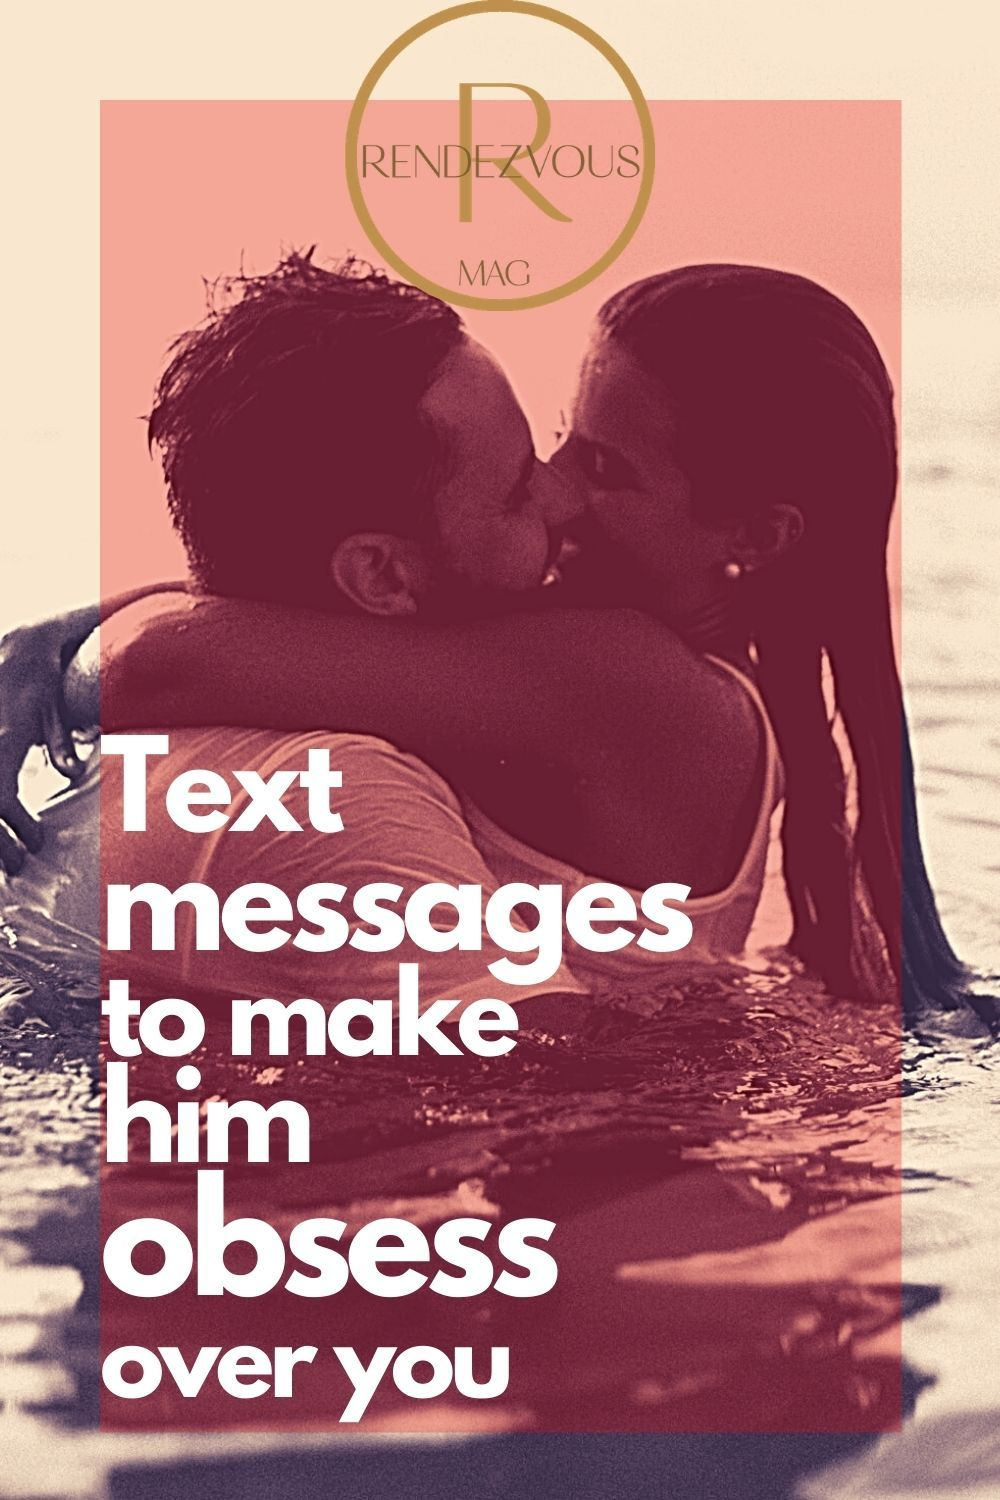 Text messages to make him obsess over you